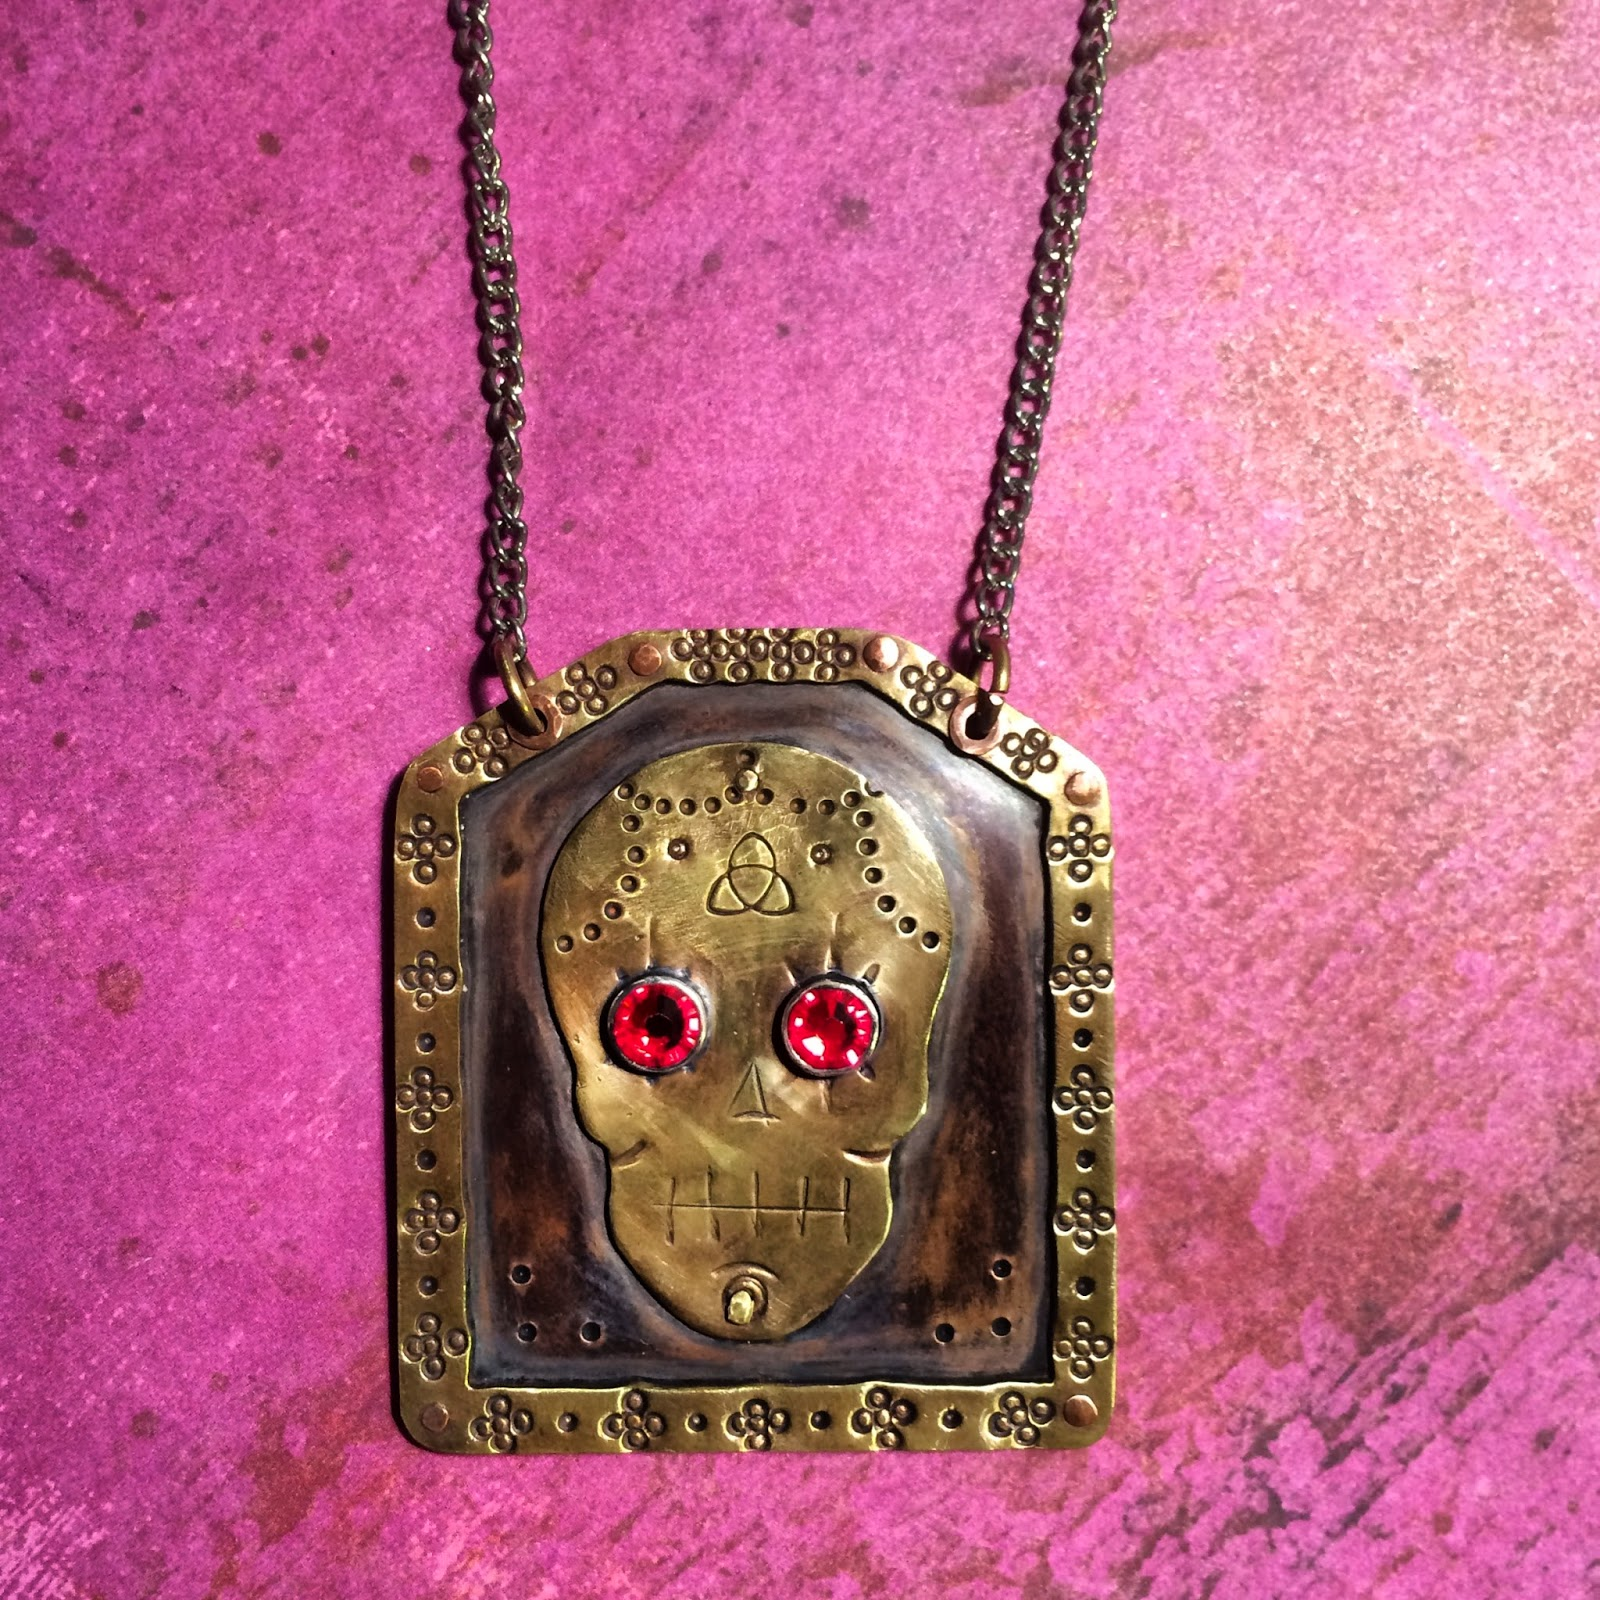 Necklace made out of brass and copper using soldering and cold connection techniques. Day of the dead necklace with texture and red eyes